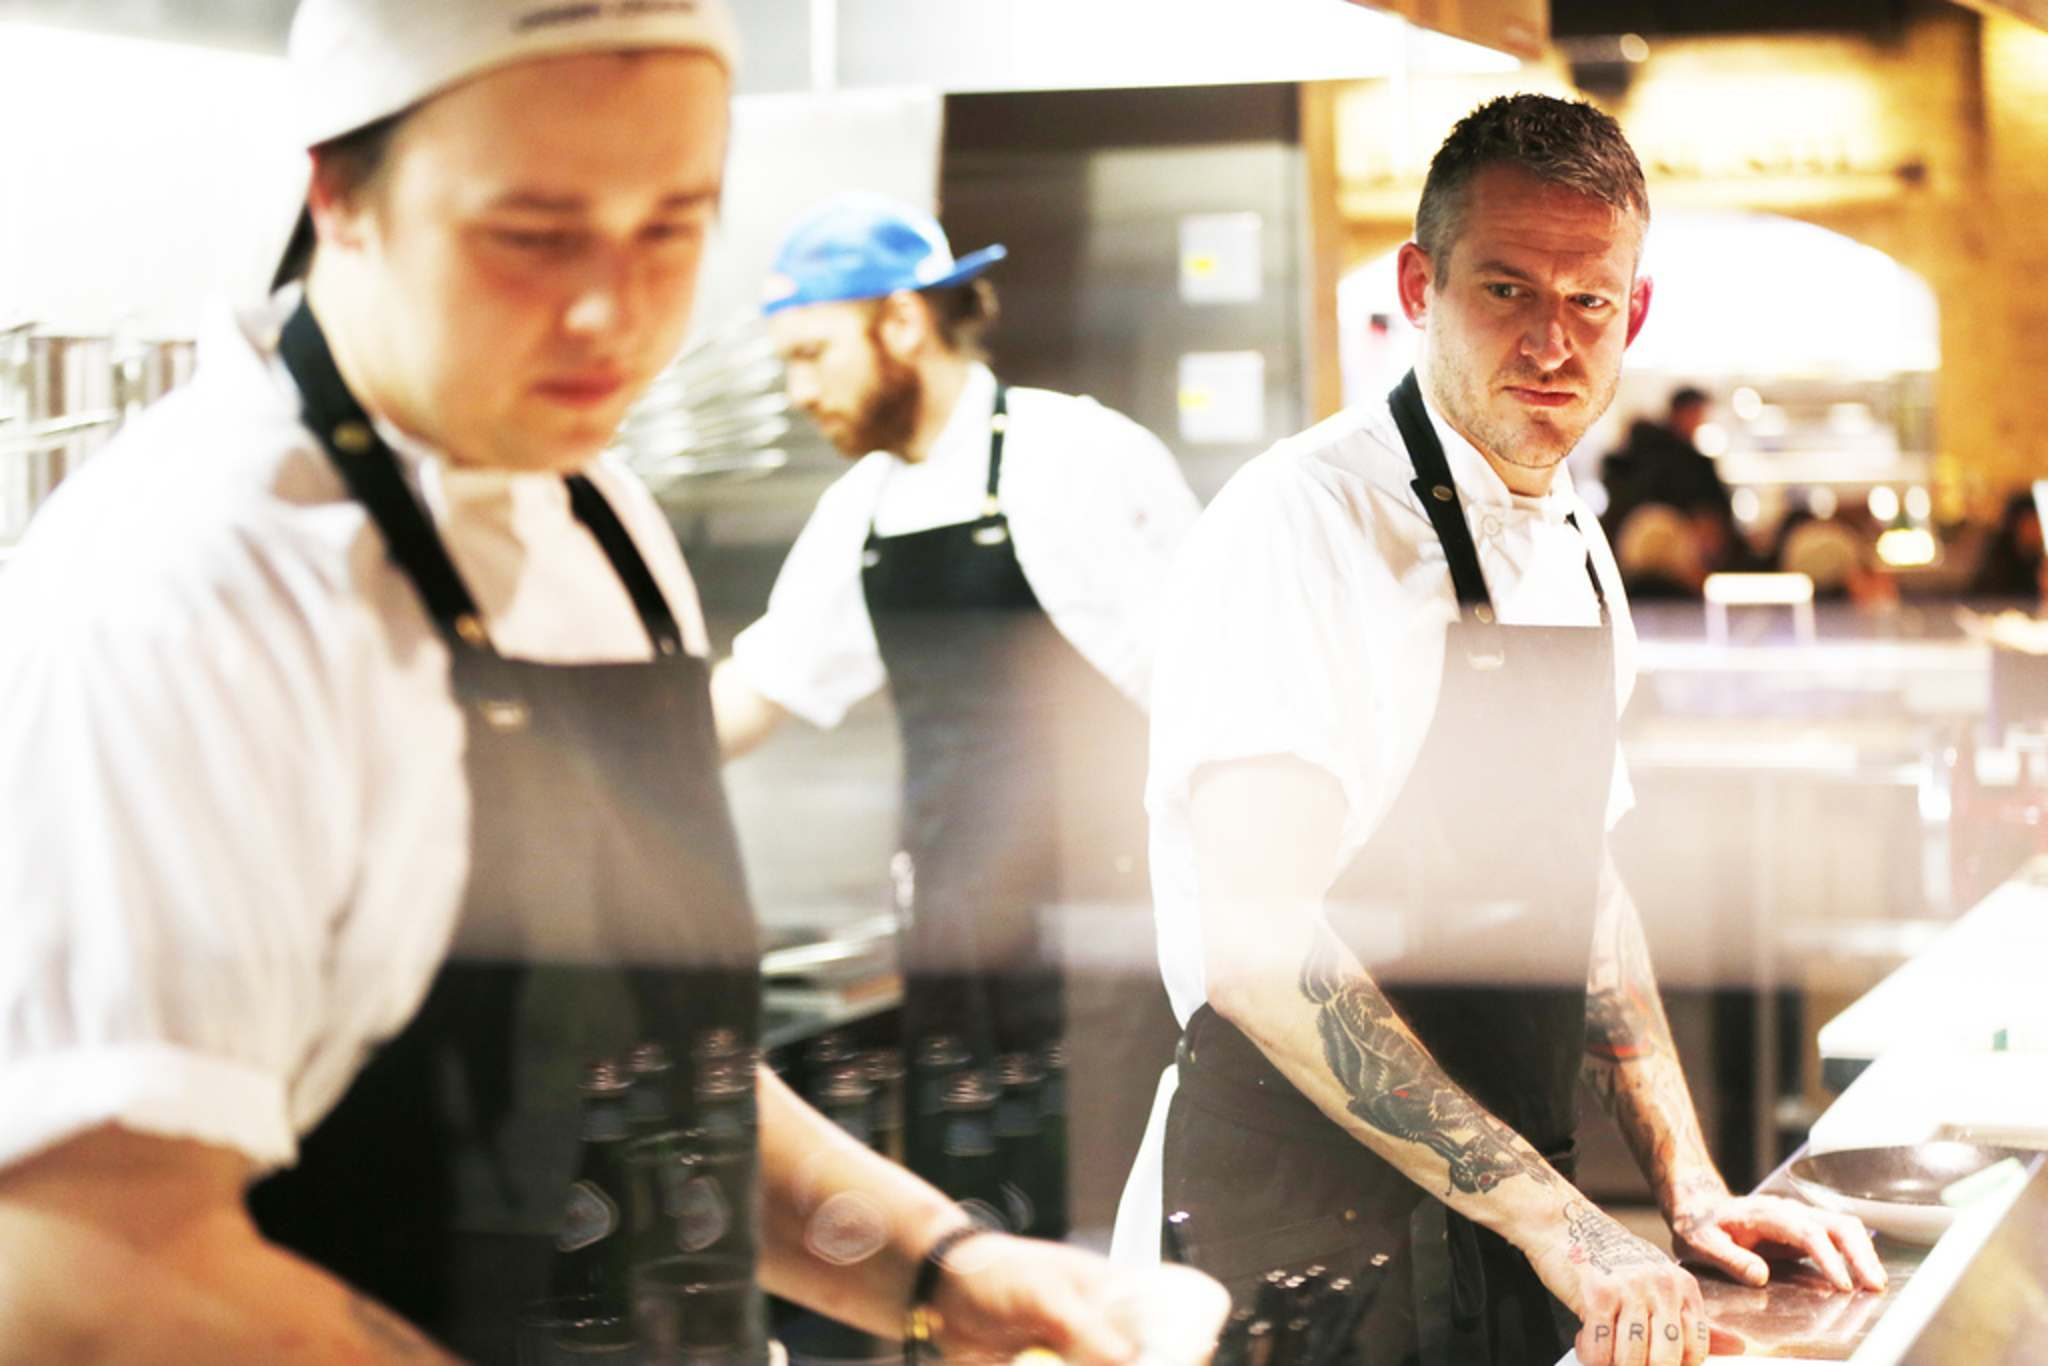 JOHN WOODS / WINNIPEG FREE PRESS</p><p>Chef Scott Bagshaw (R) oversees the line with line cooks Cody Meindl (L) and Scott Ball at Passero at The Forks in January.</p>